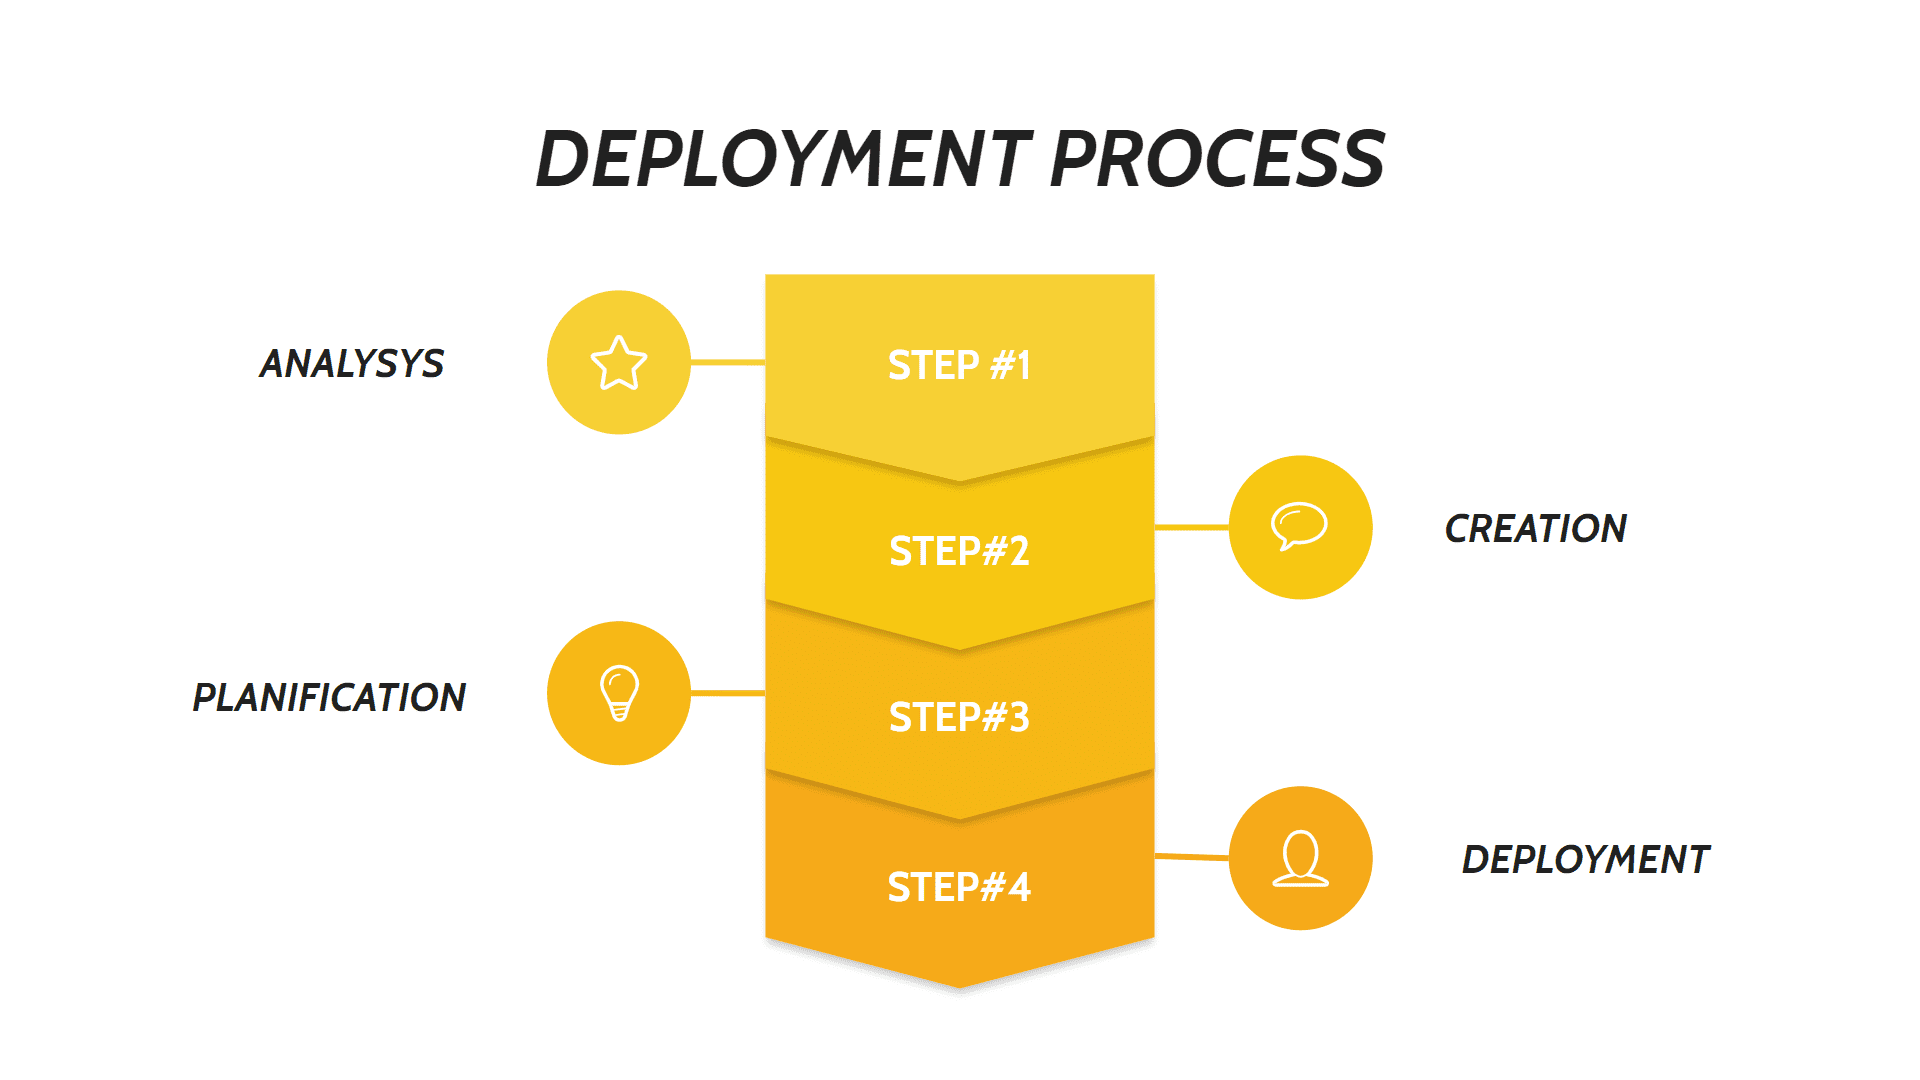 hive data center deployment process